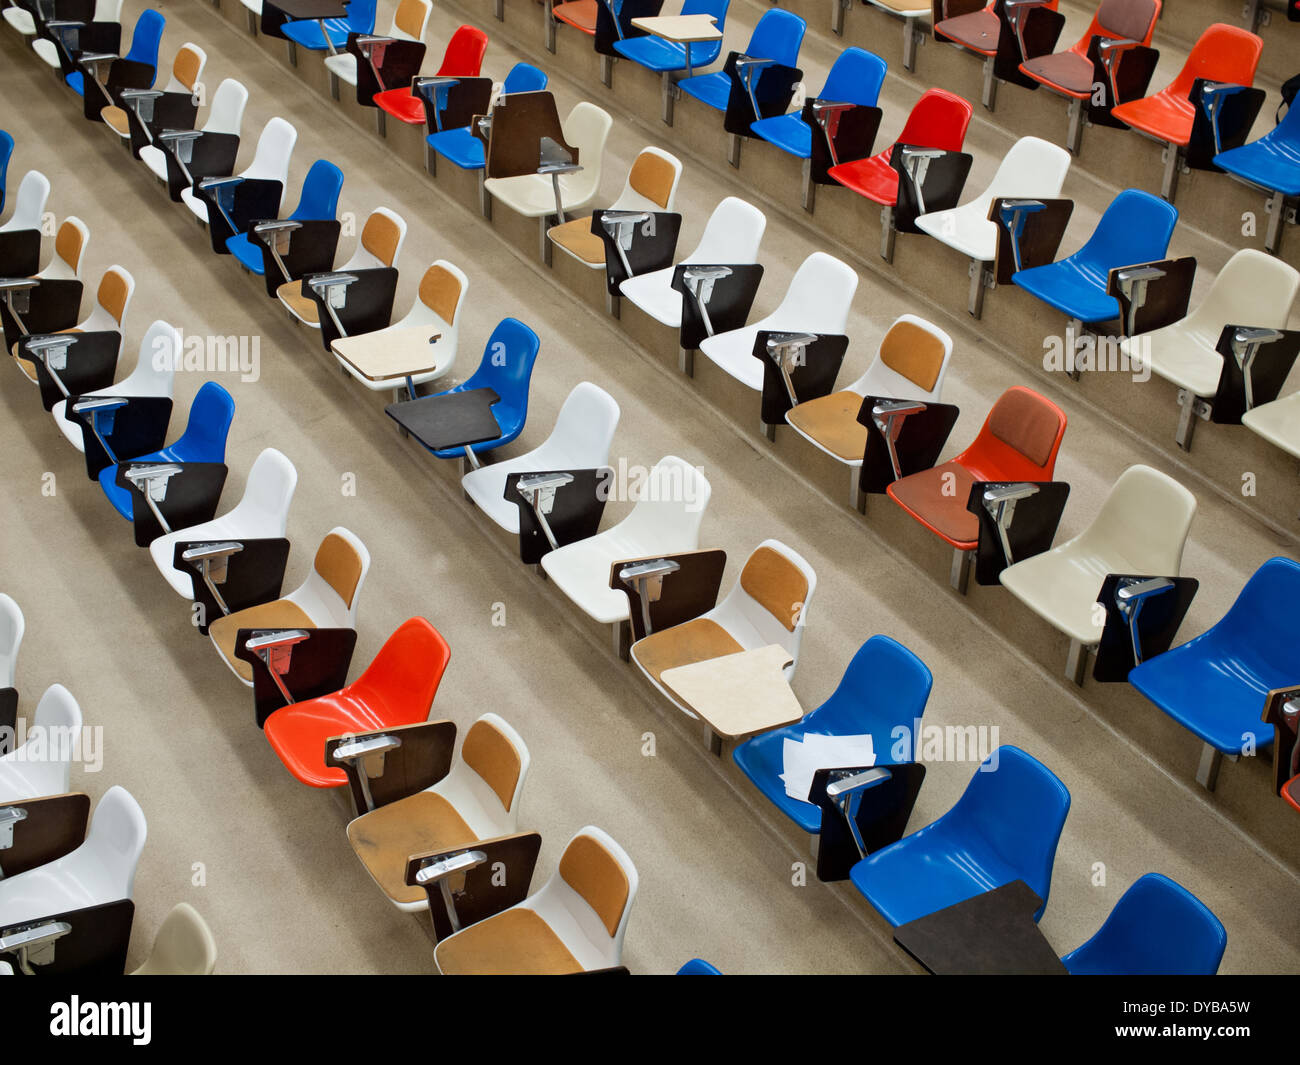 Empty seats in a lecture hall in the Gunning / Lemieux Chemistry Centre at the University of Alberta in Edmonton, Canada. - Stock Image